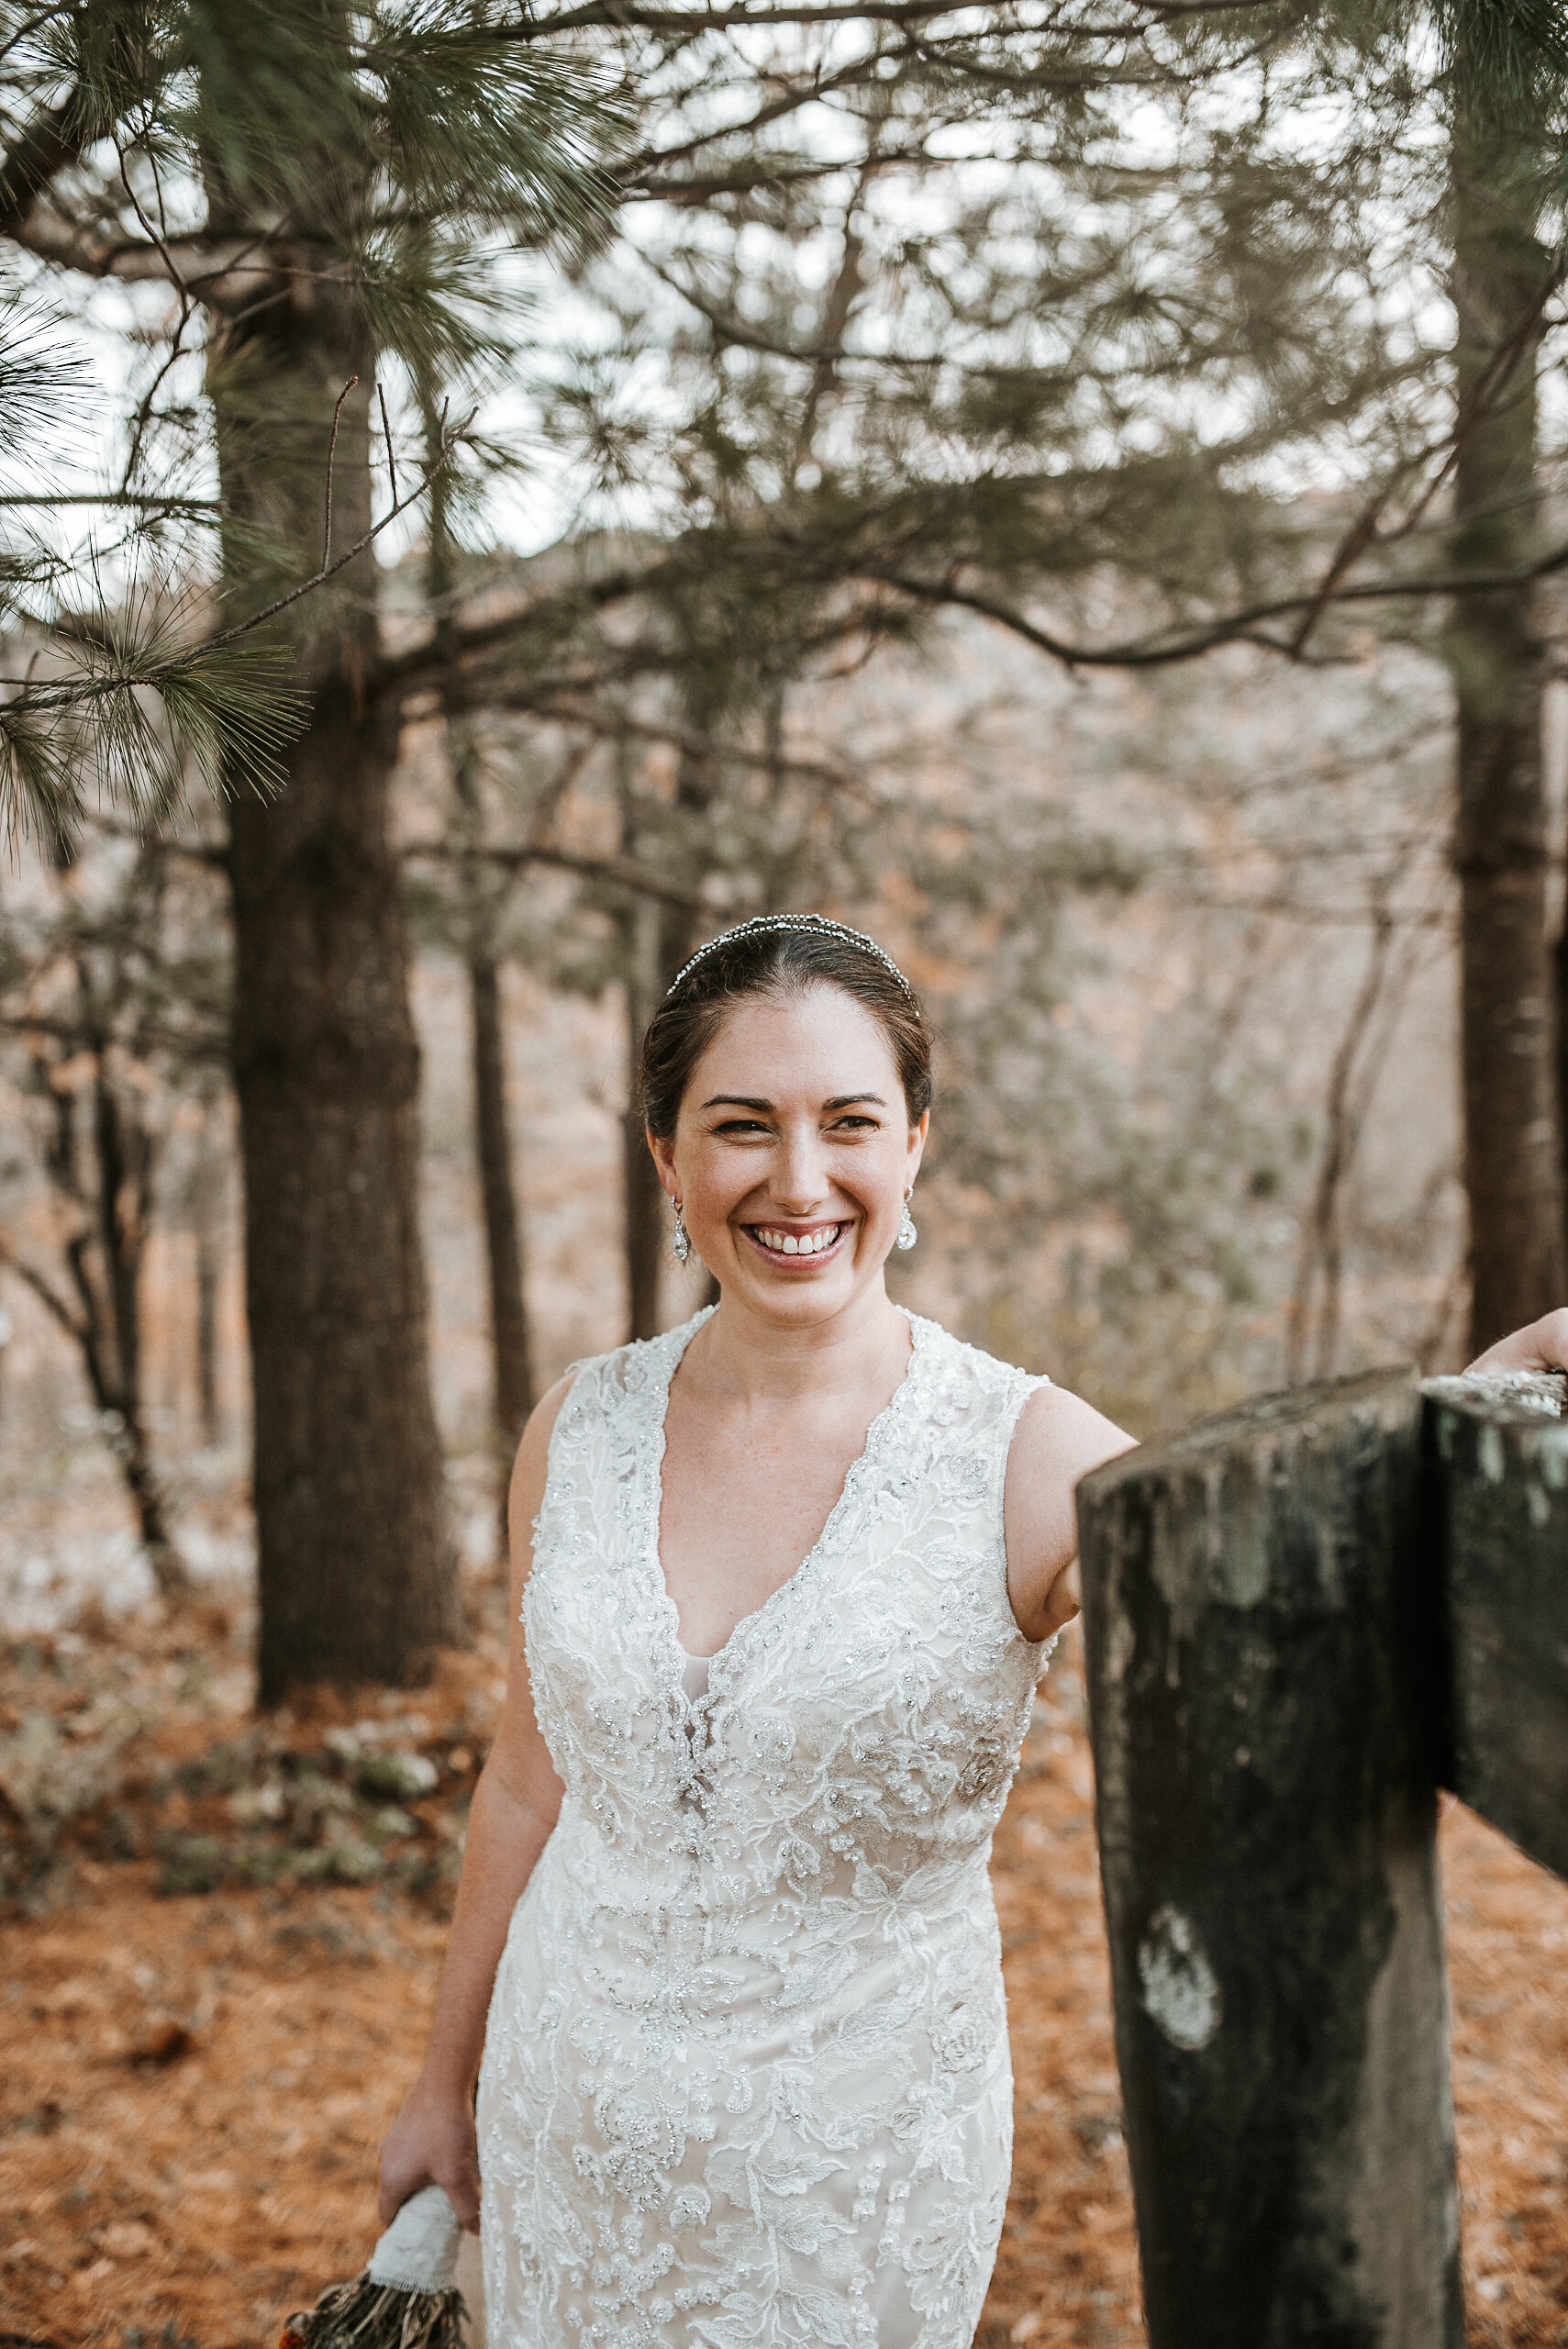 Bride standing near wooden post